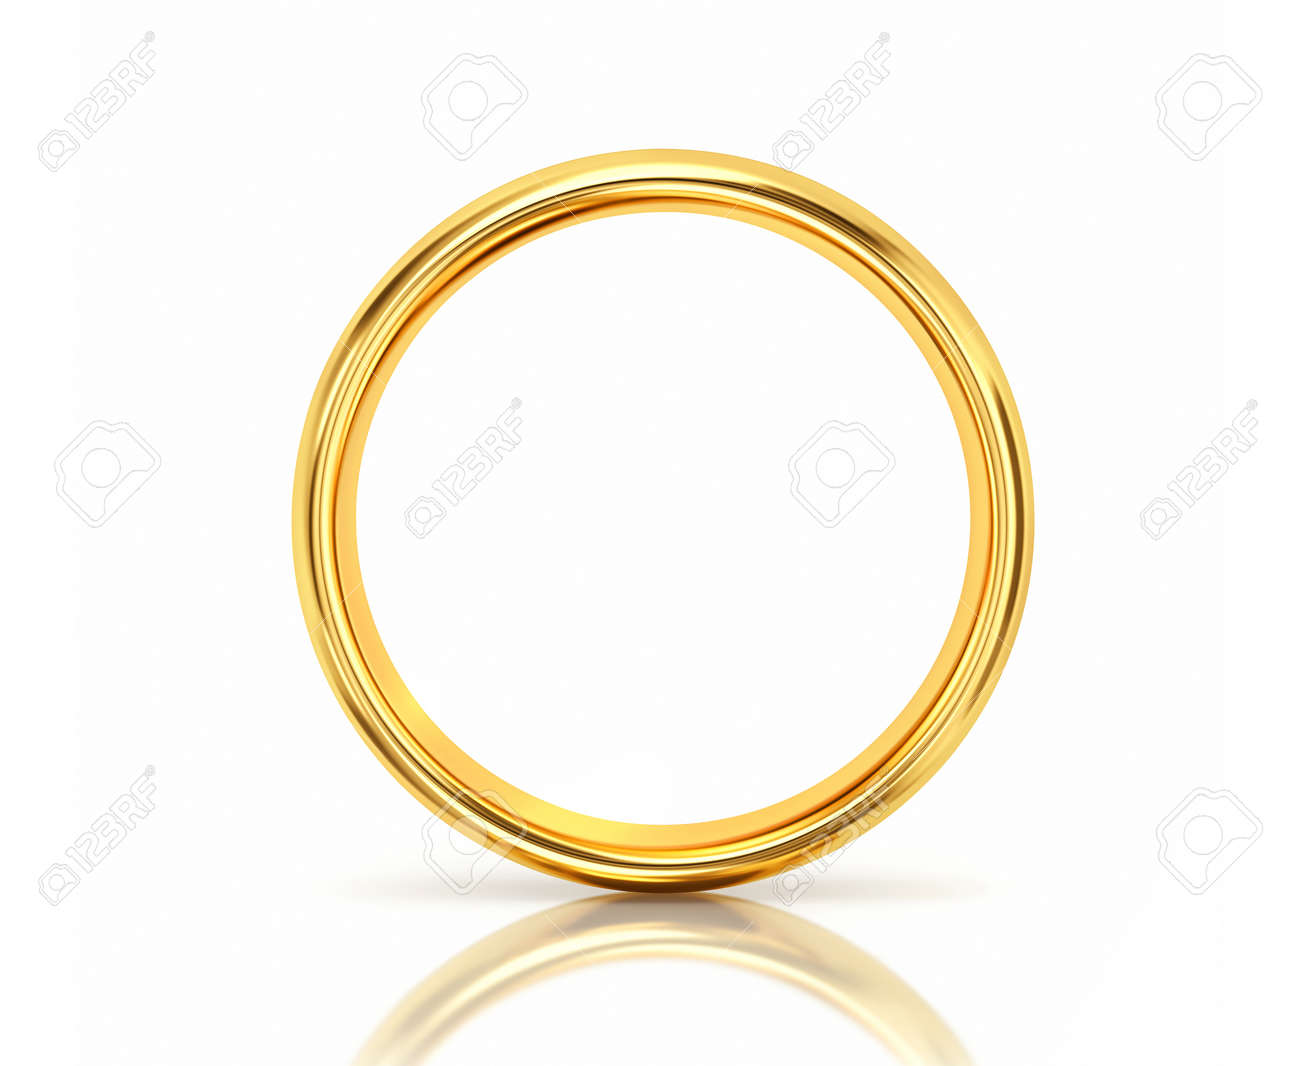 Golden ring with reflection isolated on white background. 3D rendering - 156609876